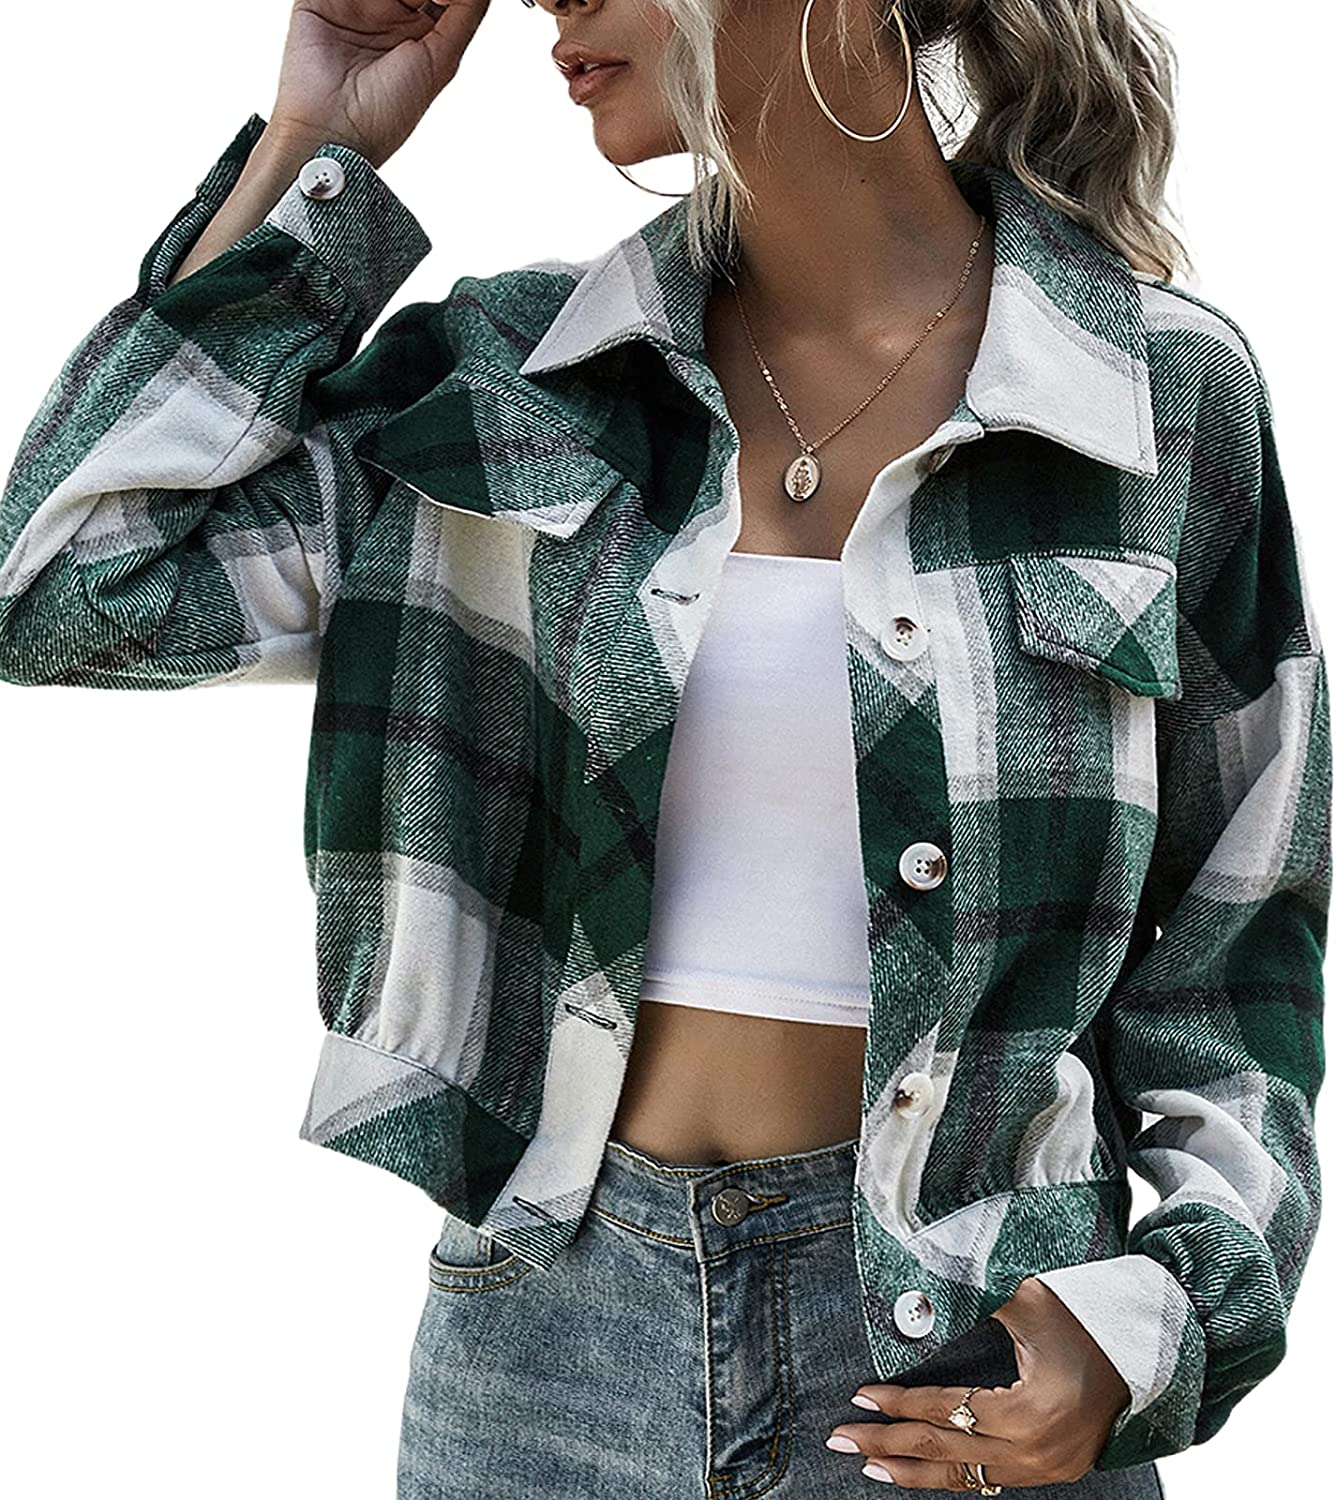 Women Button Up Plaid Shirt Jacket Thick Short Shacket Coat Vintage Crop Tunic Casual Blouse Top Outwear with Pocket